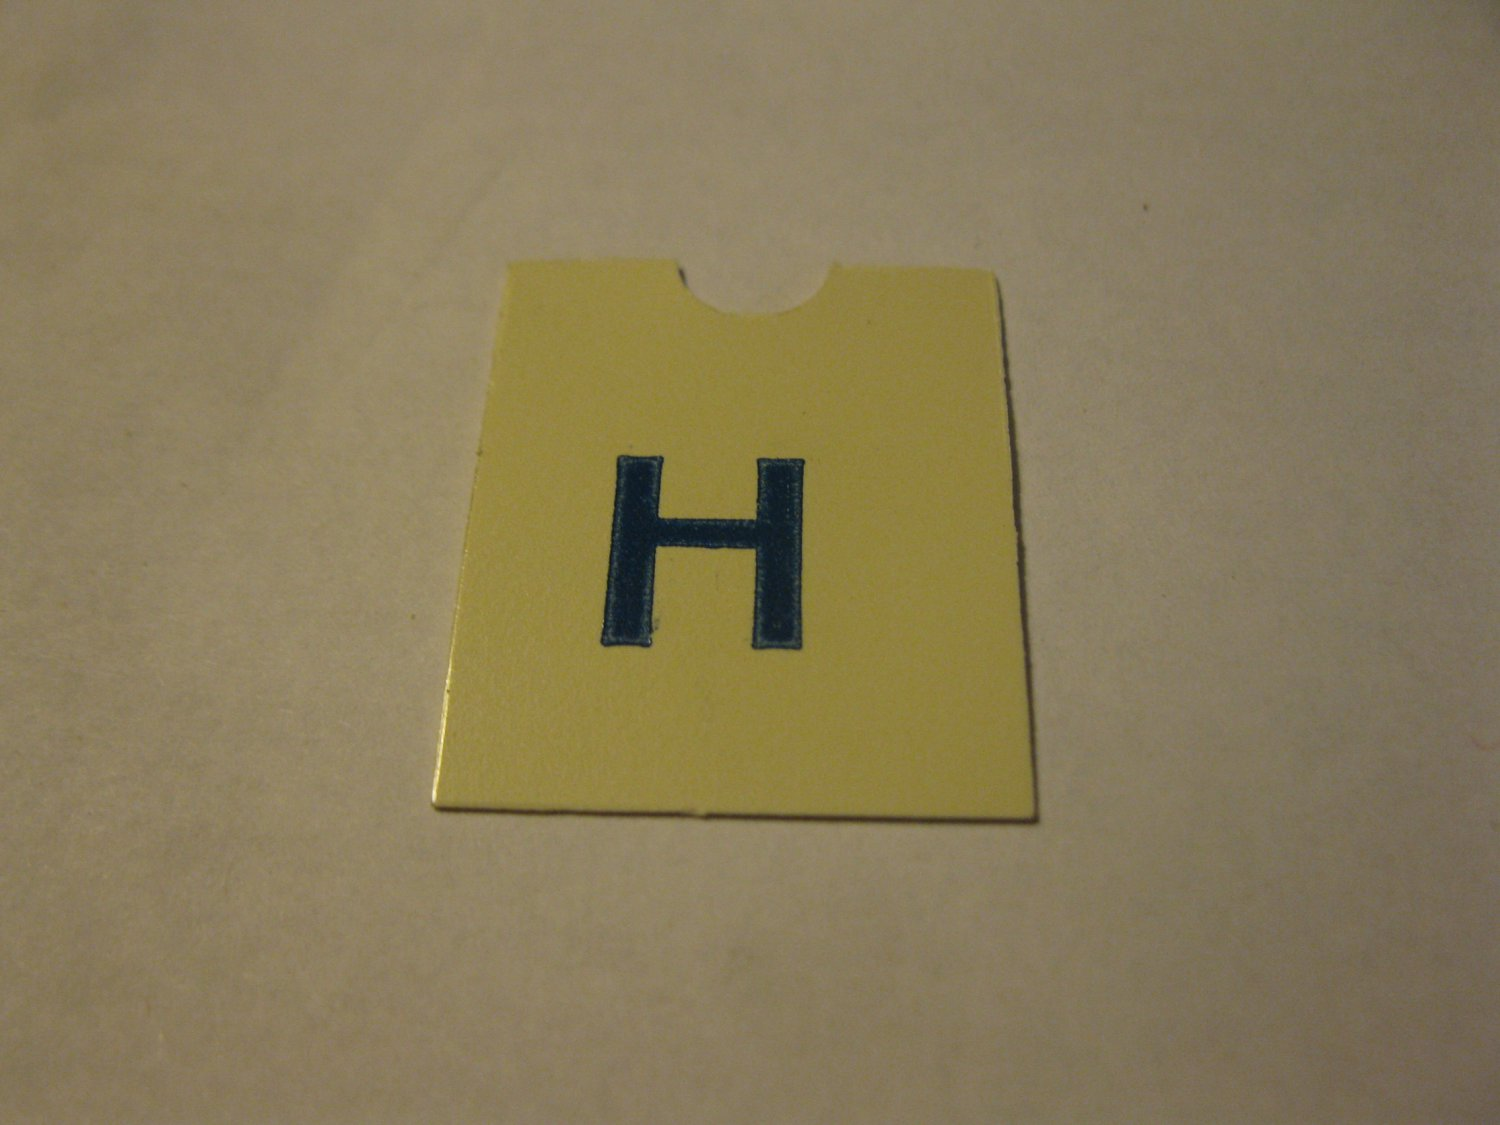 1967 4CYTE Board Game Piece: Blue Letter Tab - H